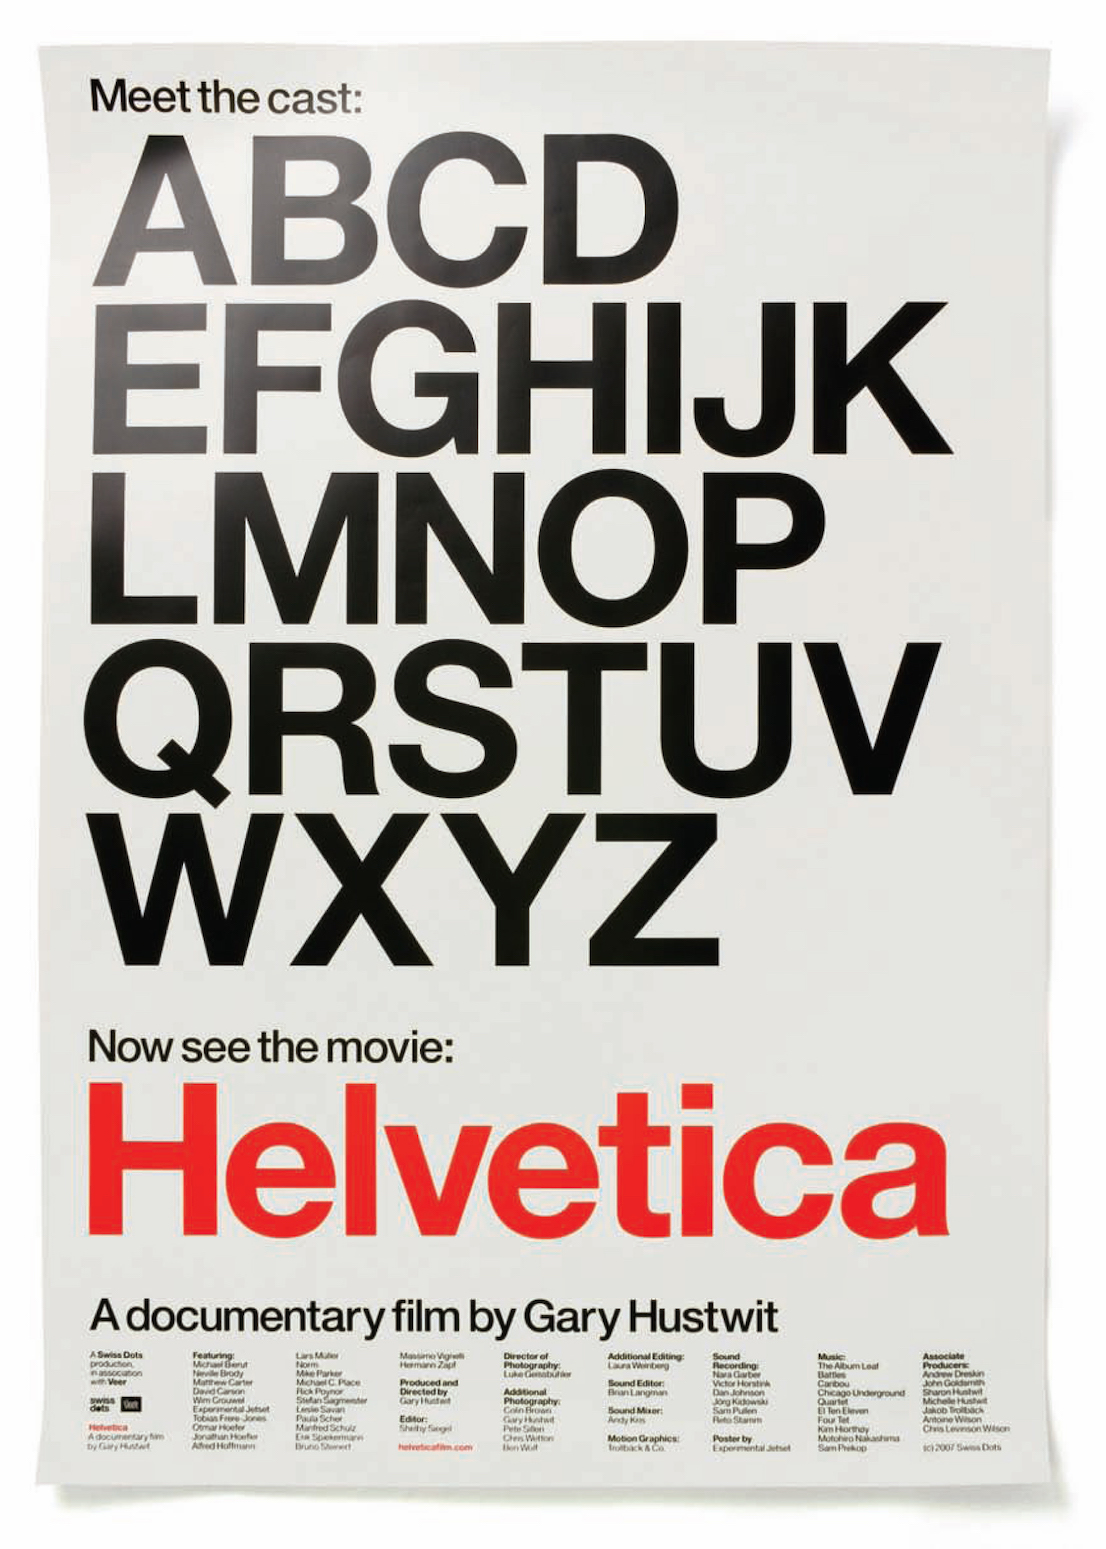 """Meet The Cast"", film poster for Helvetica, 2007."